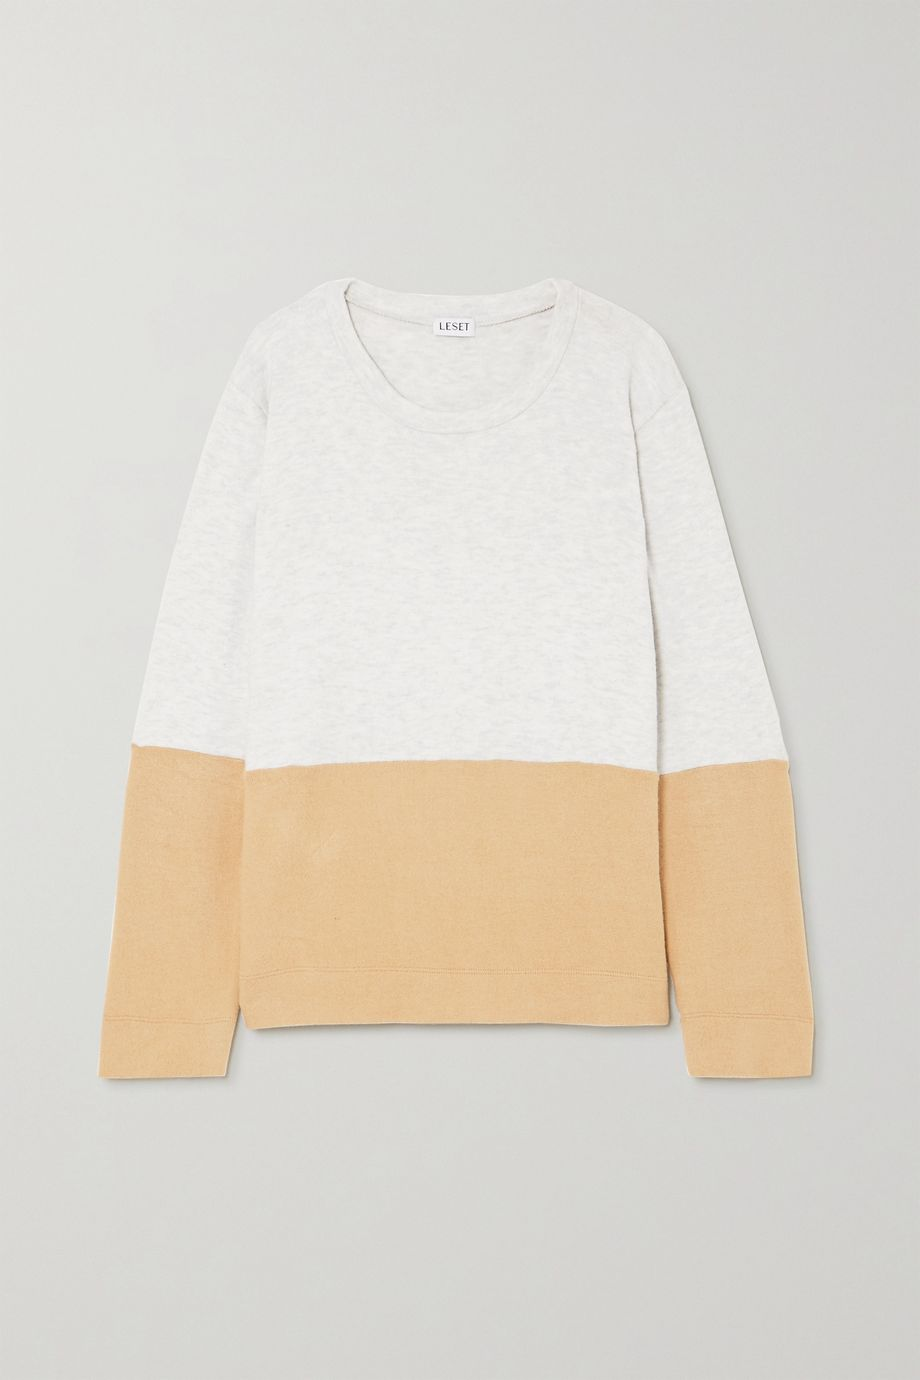 LESET Lori two-tone brushed stretch-knit sweater